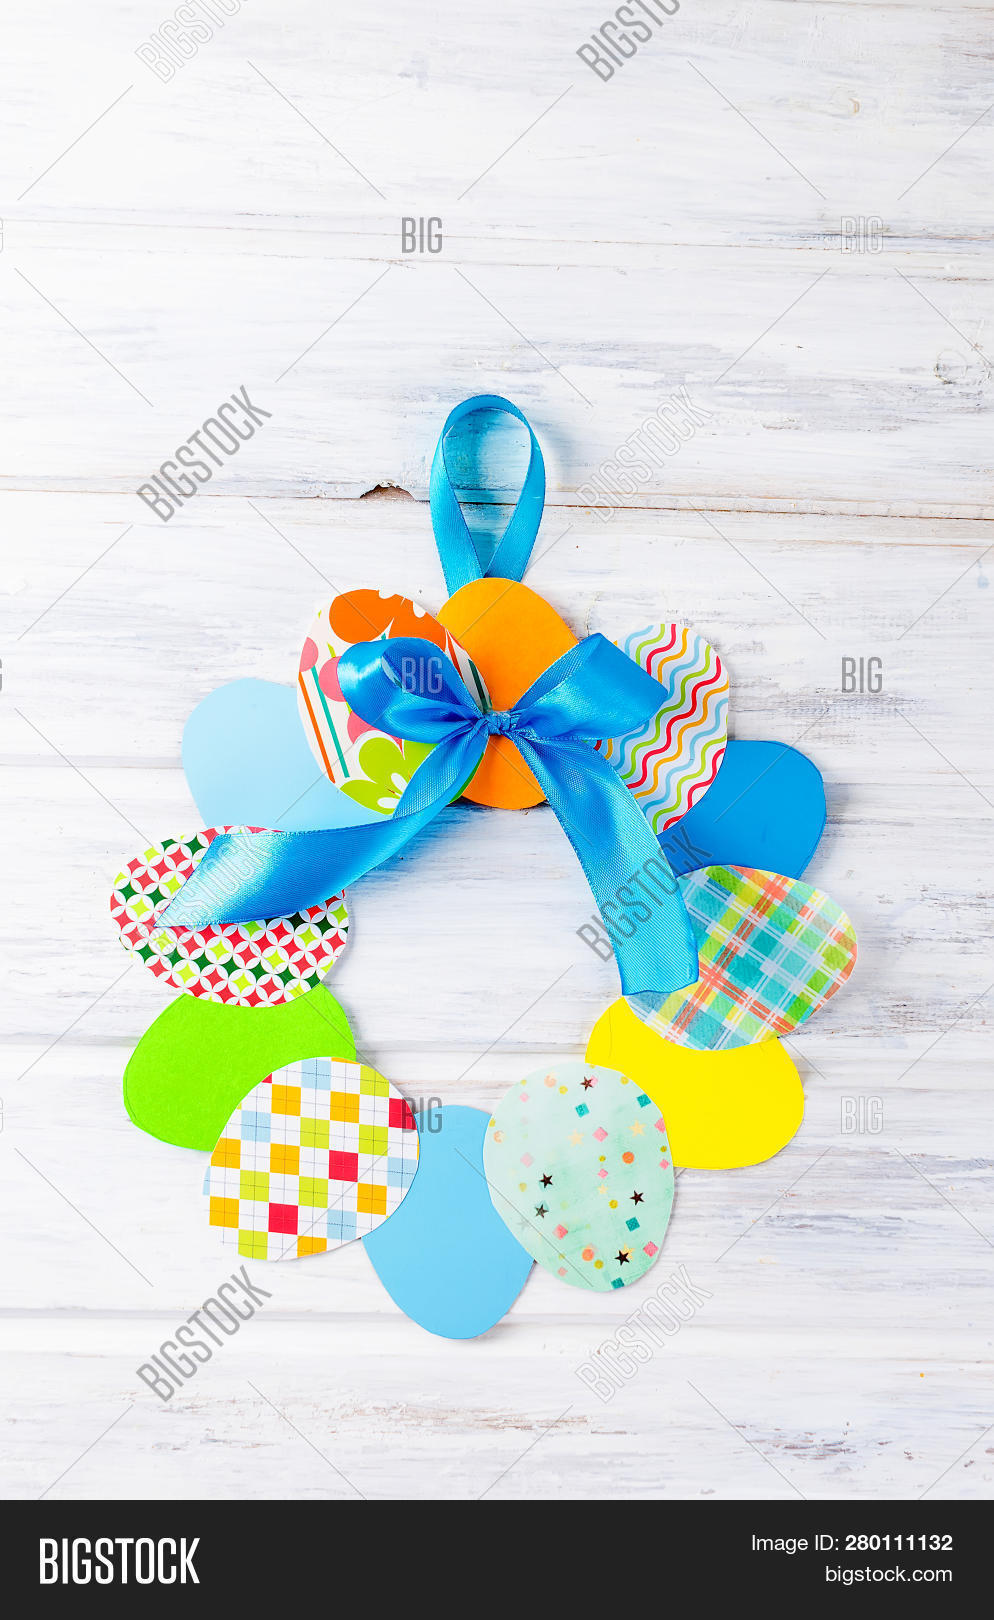 Craft Paper Form Image Photo Free Trial Bigstock